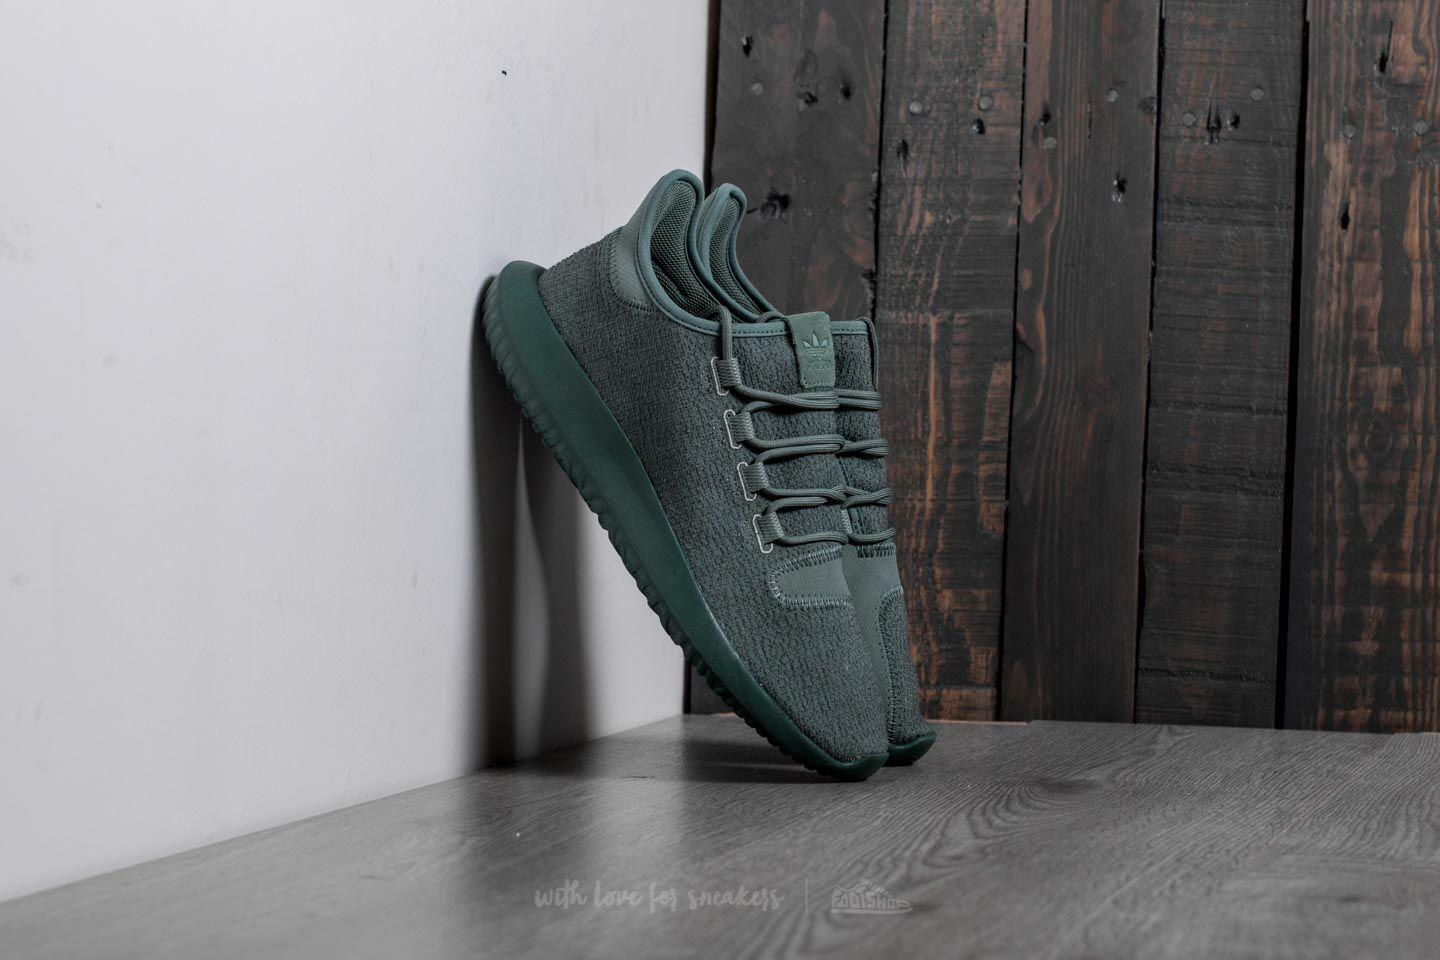 Adidas Originals Tubular Shadow Trace Green Men's 13 Athletic Sneakers BY3573